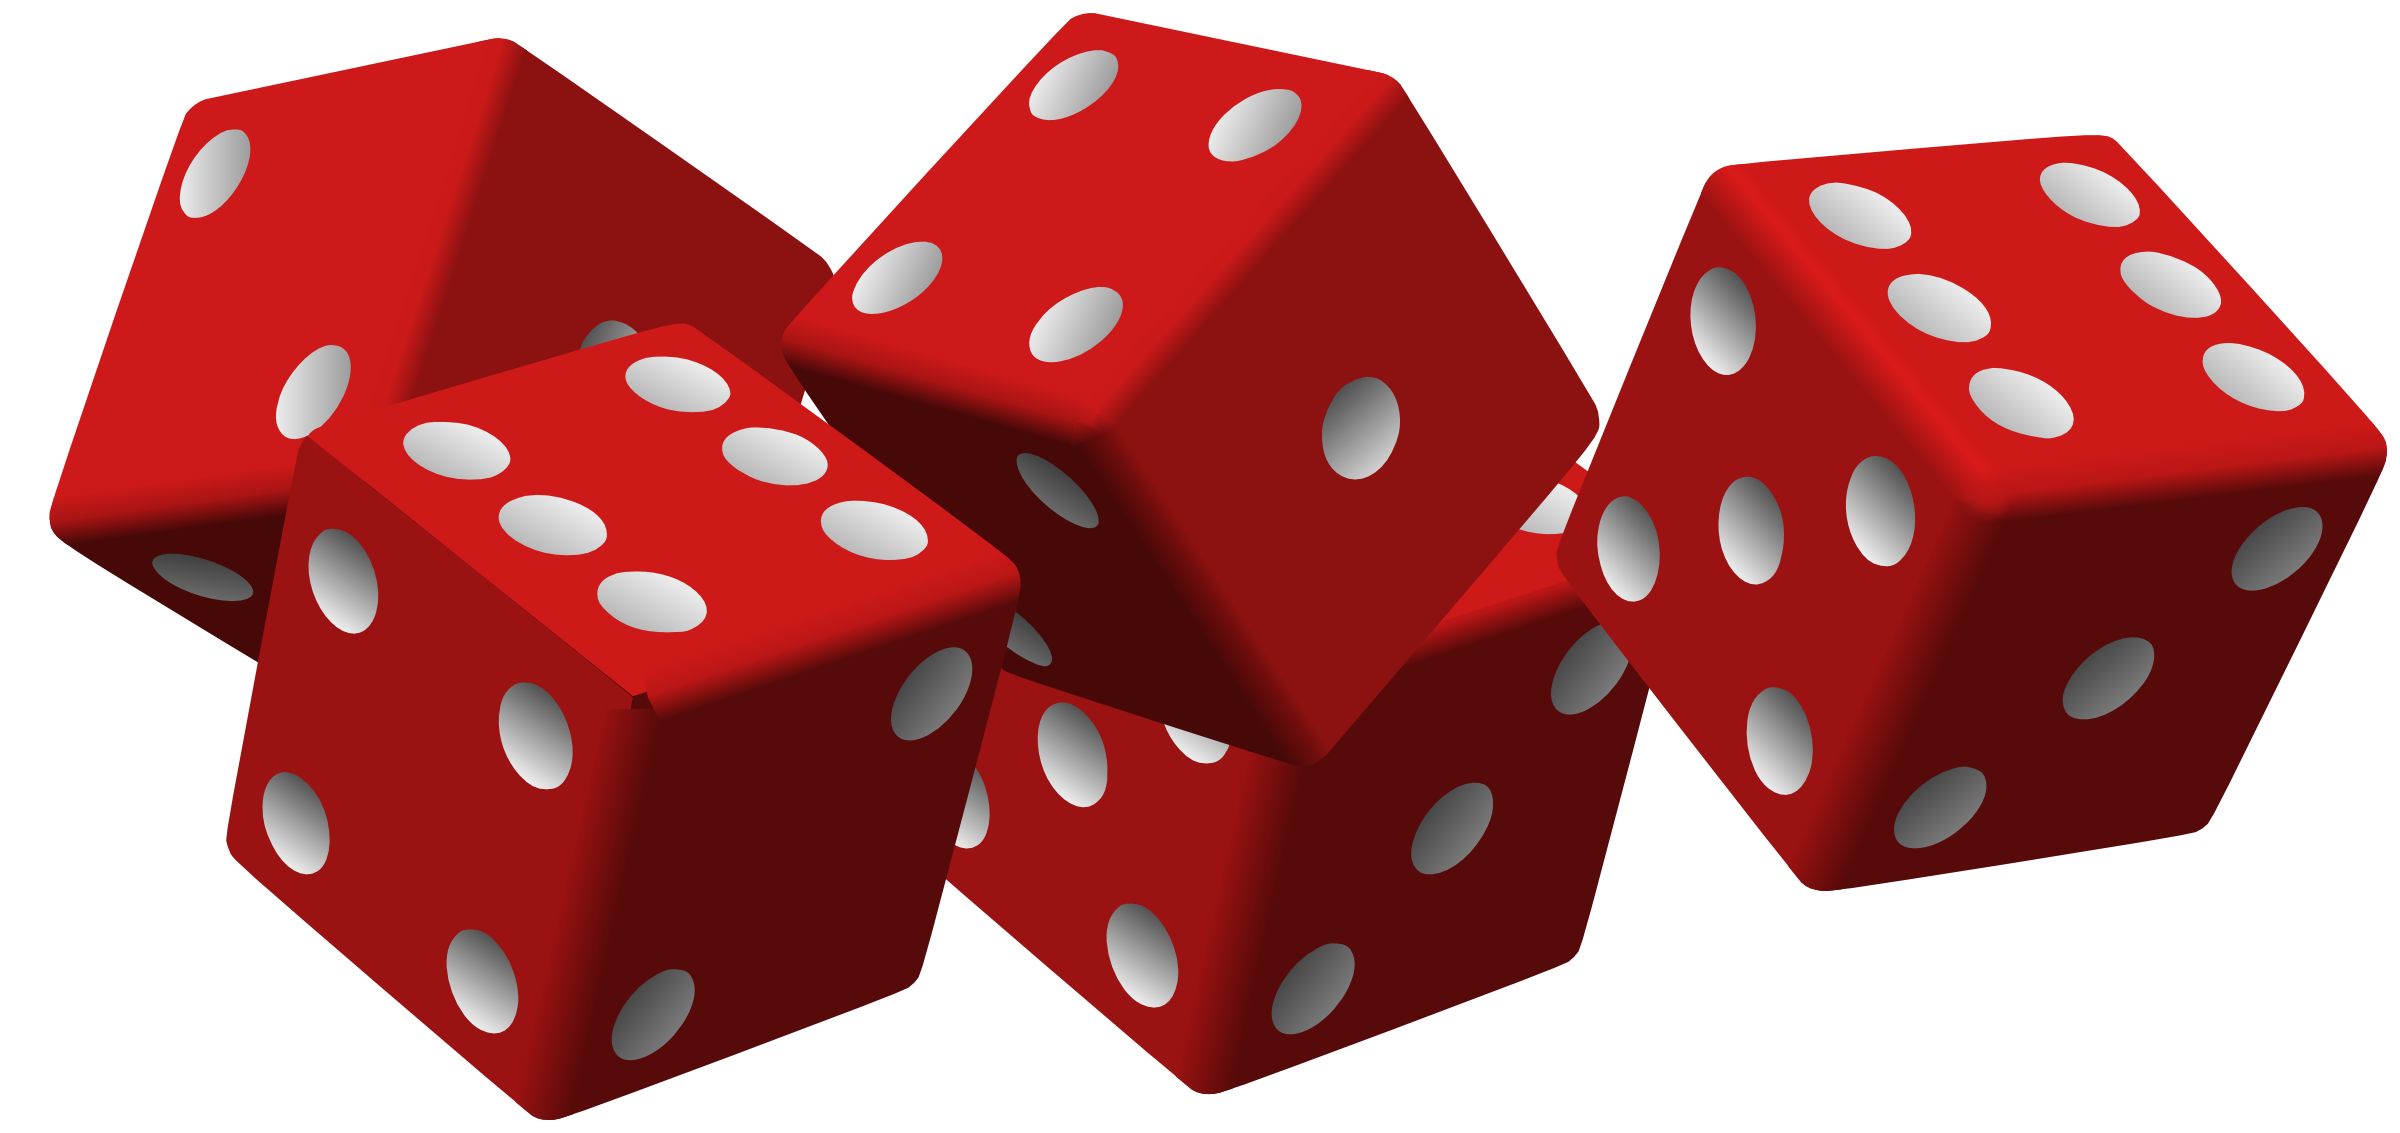 Number 1 clipart dice. Transparent png pictures free